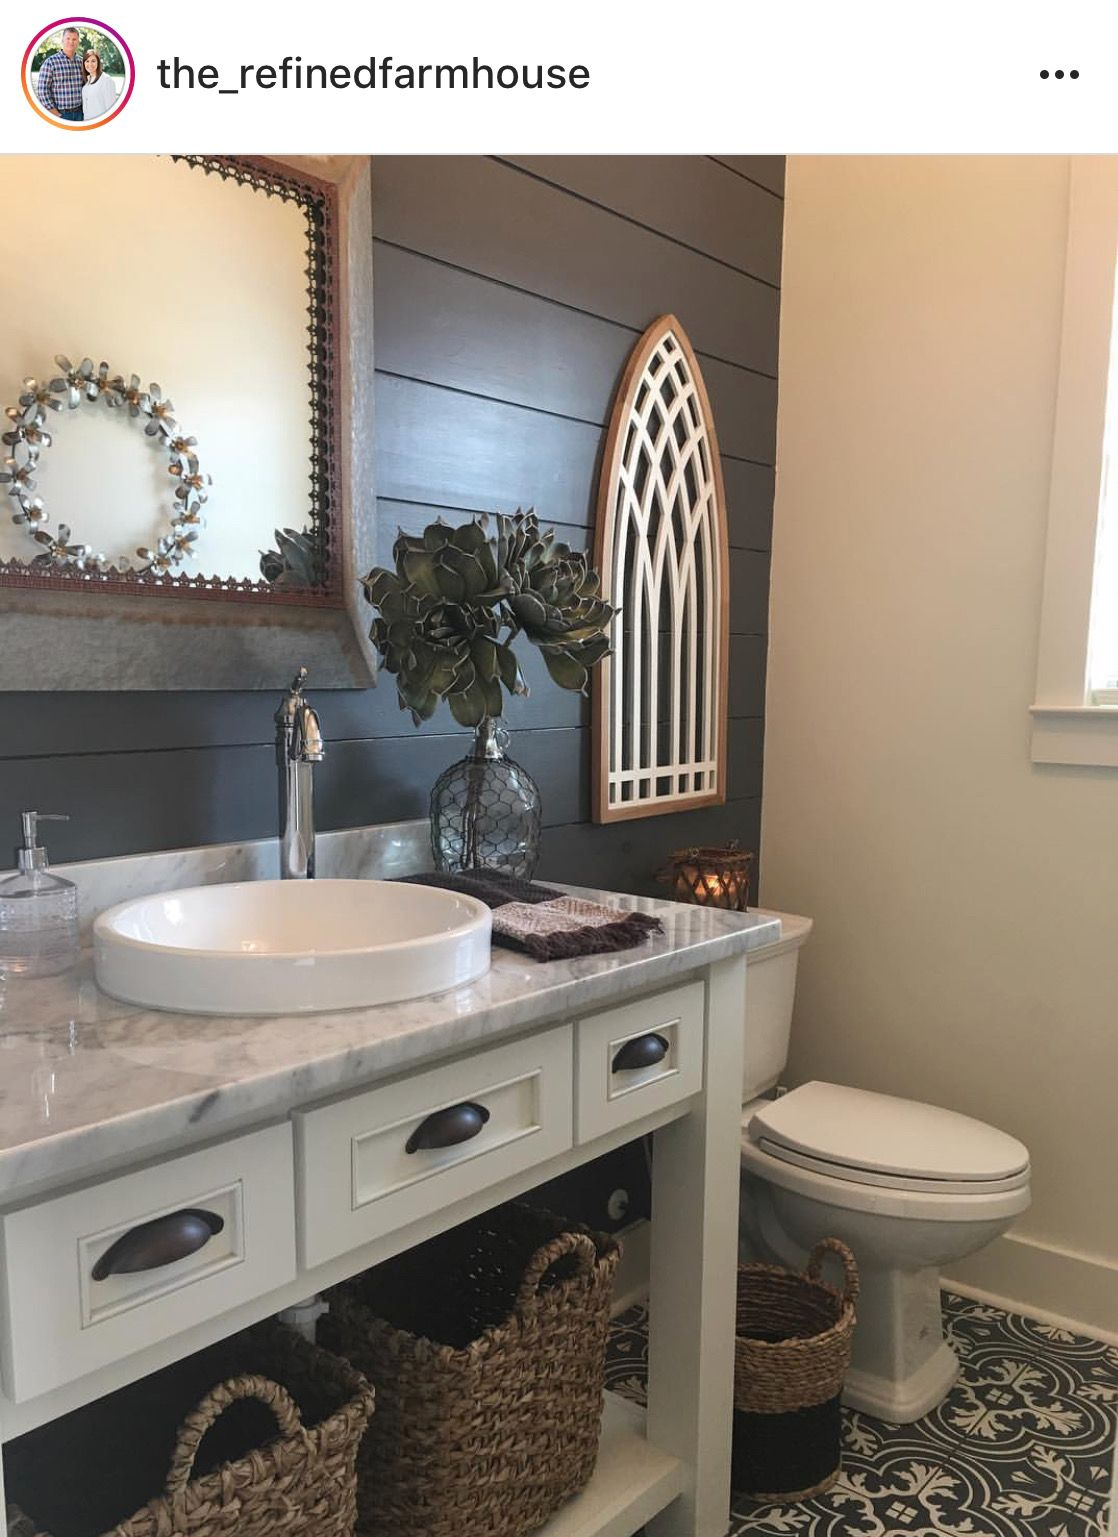 Pin By Melanie Hammett On Bathrooms Shiplap Bathroom Guest Bathroom Small Half Bath Remodel